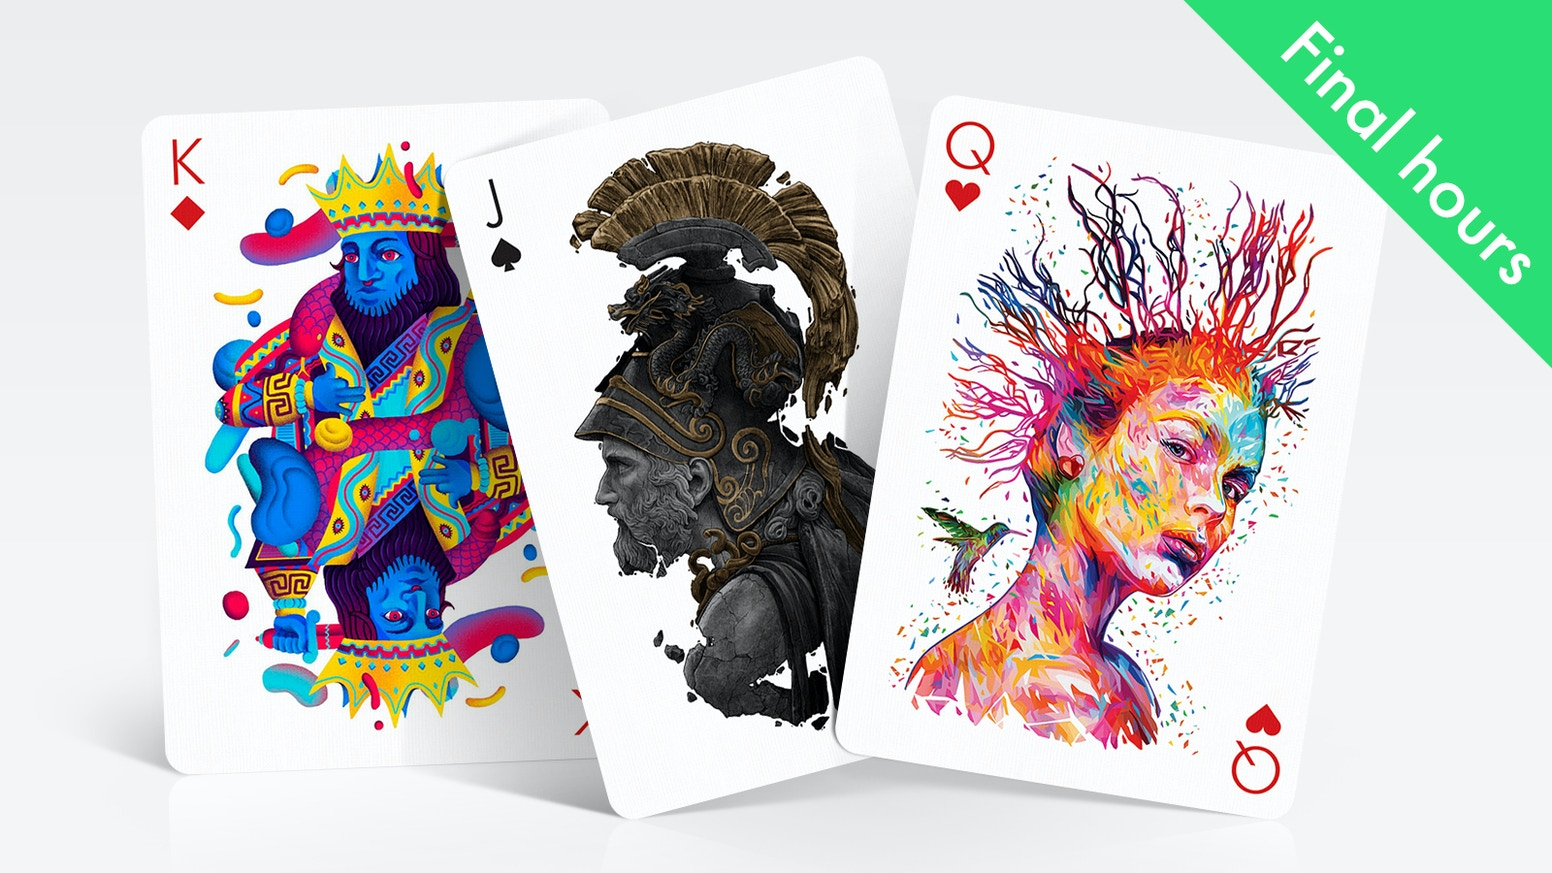 Unique playing card decks where each card is illustrated by different international artist in his distinct style and technique.